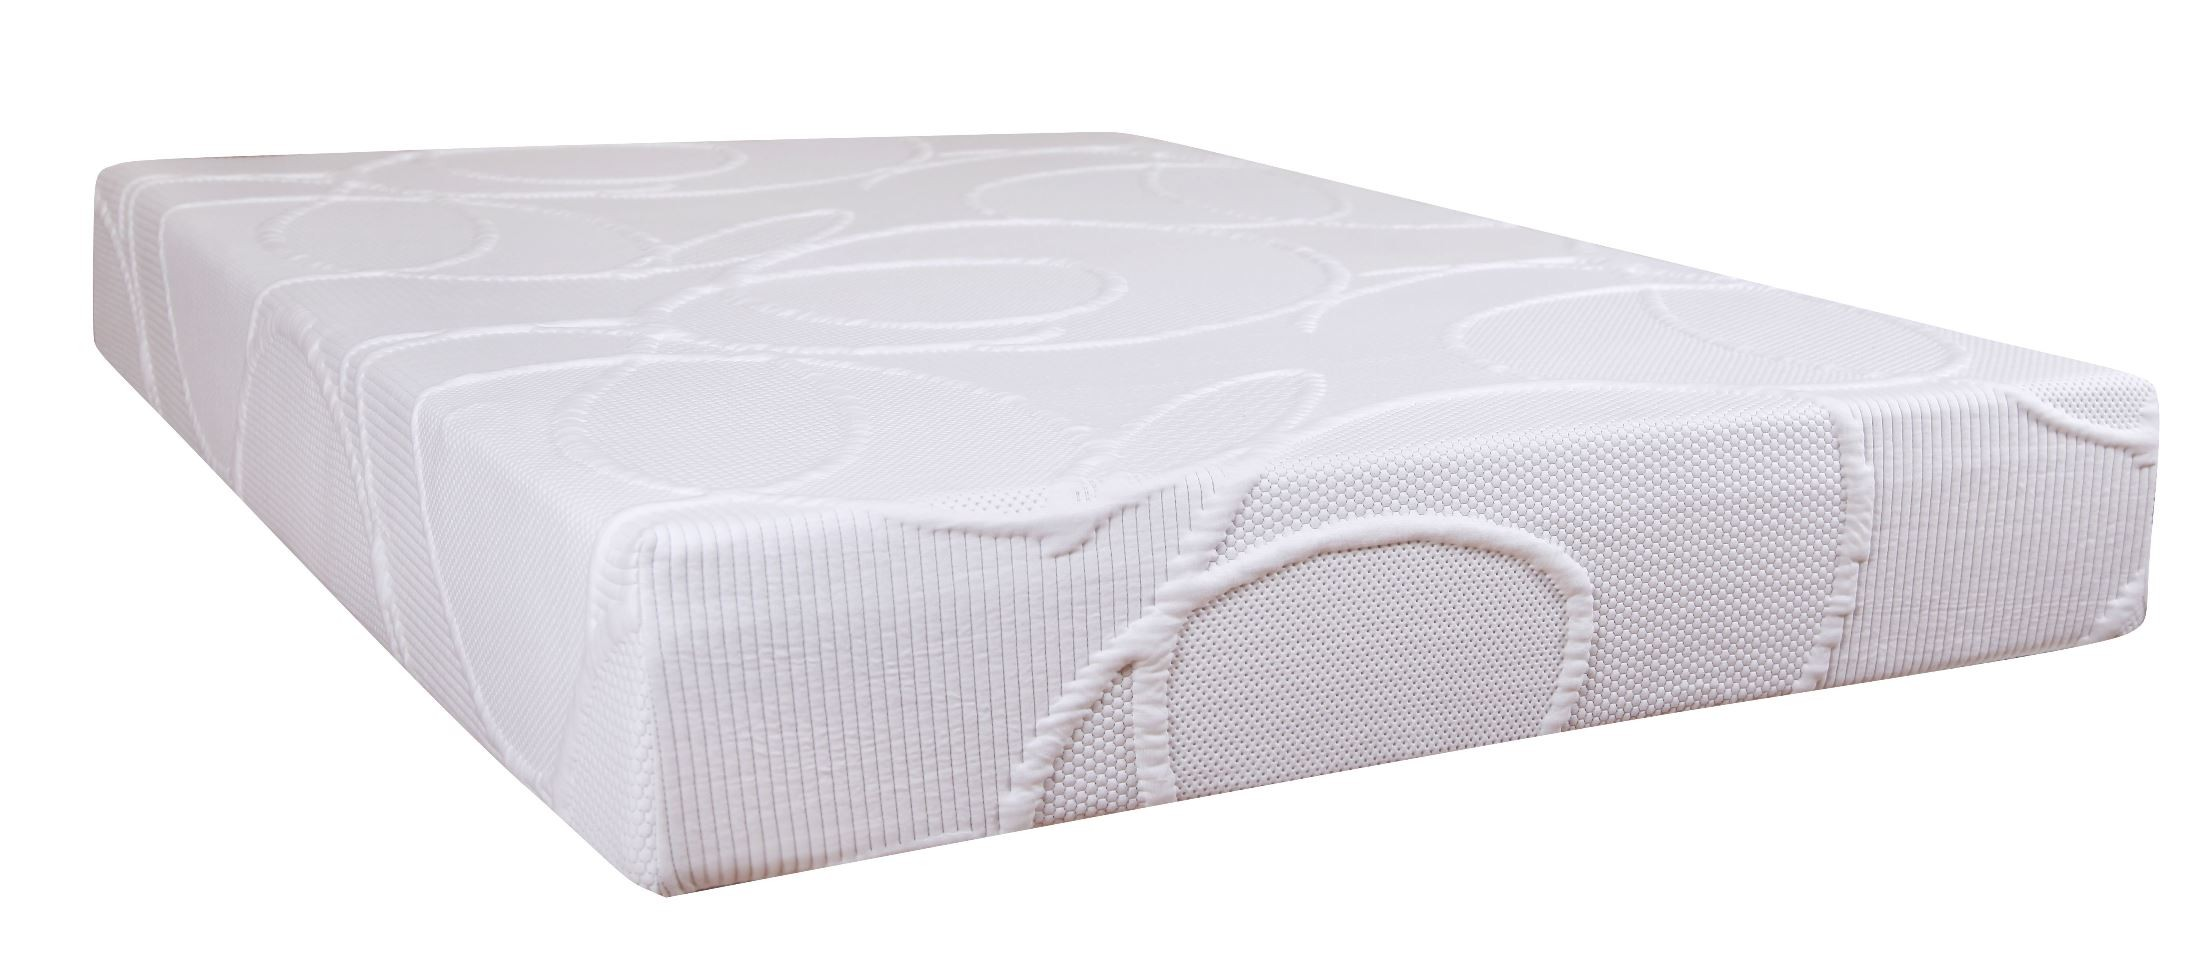 Polaris 10 Memory Foam King Size Mattress From Klaussner Polariskkmat Coleman Furniture: memory foam king size mattress